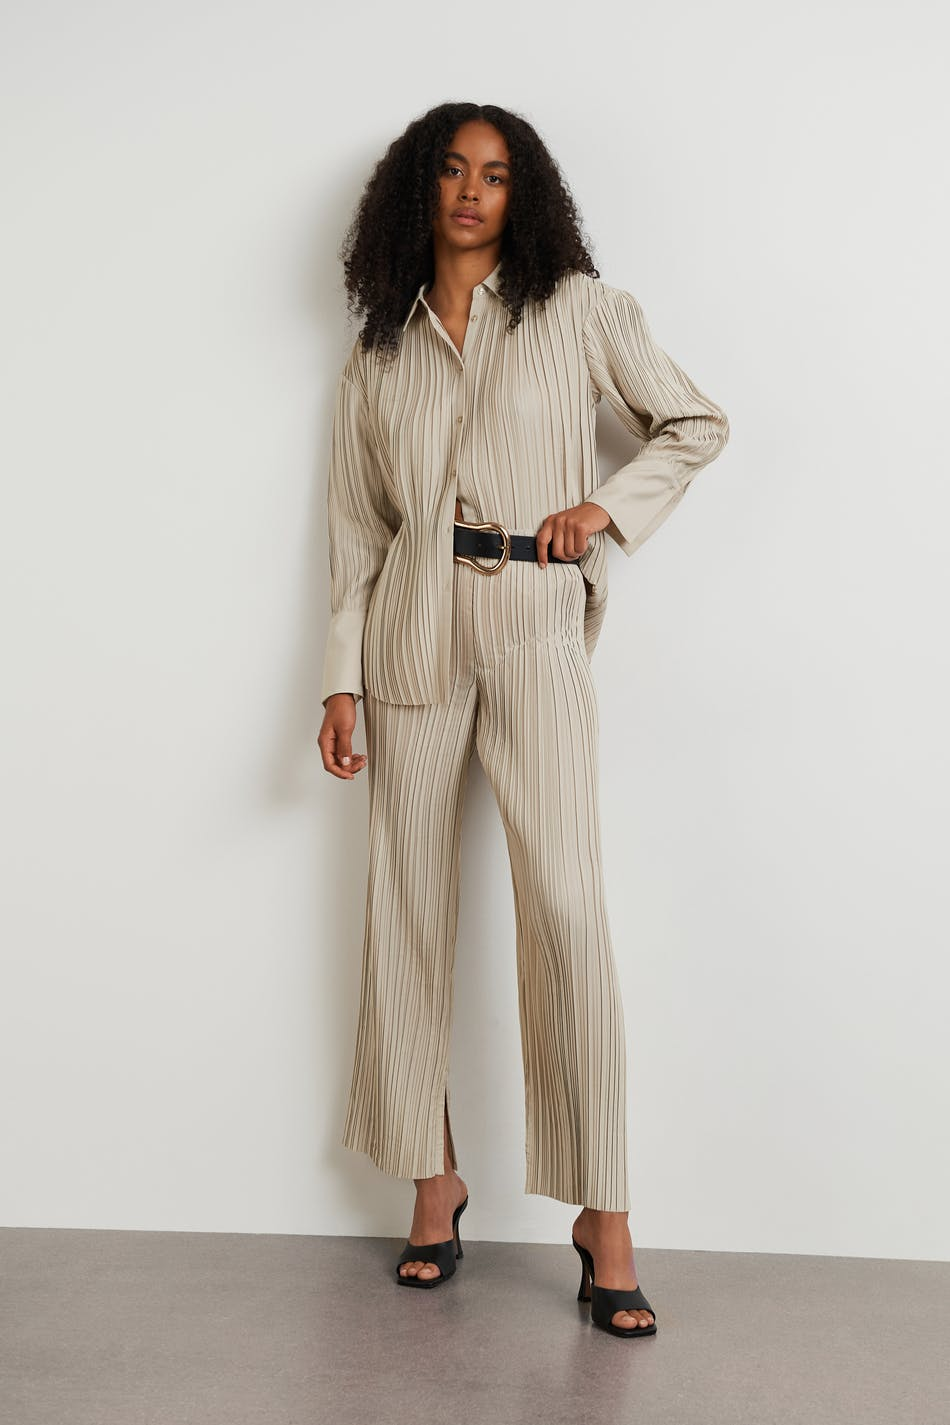 Gina Tricot Acra pleated trousers